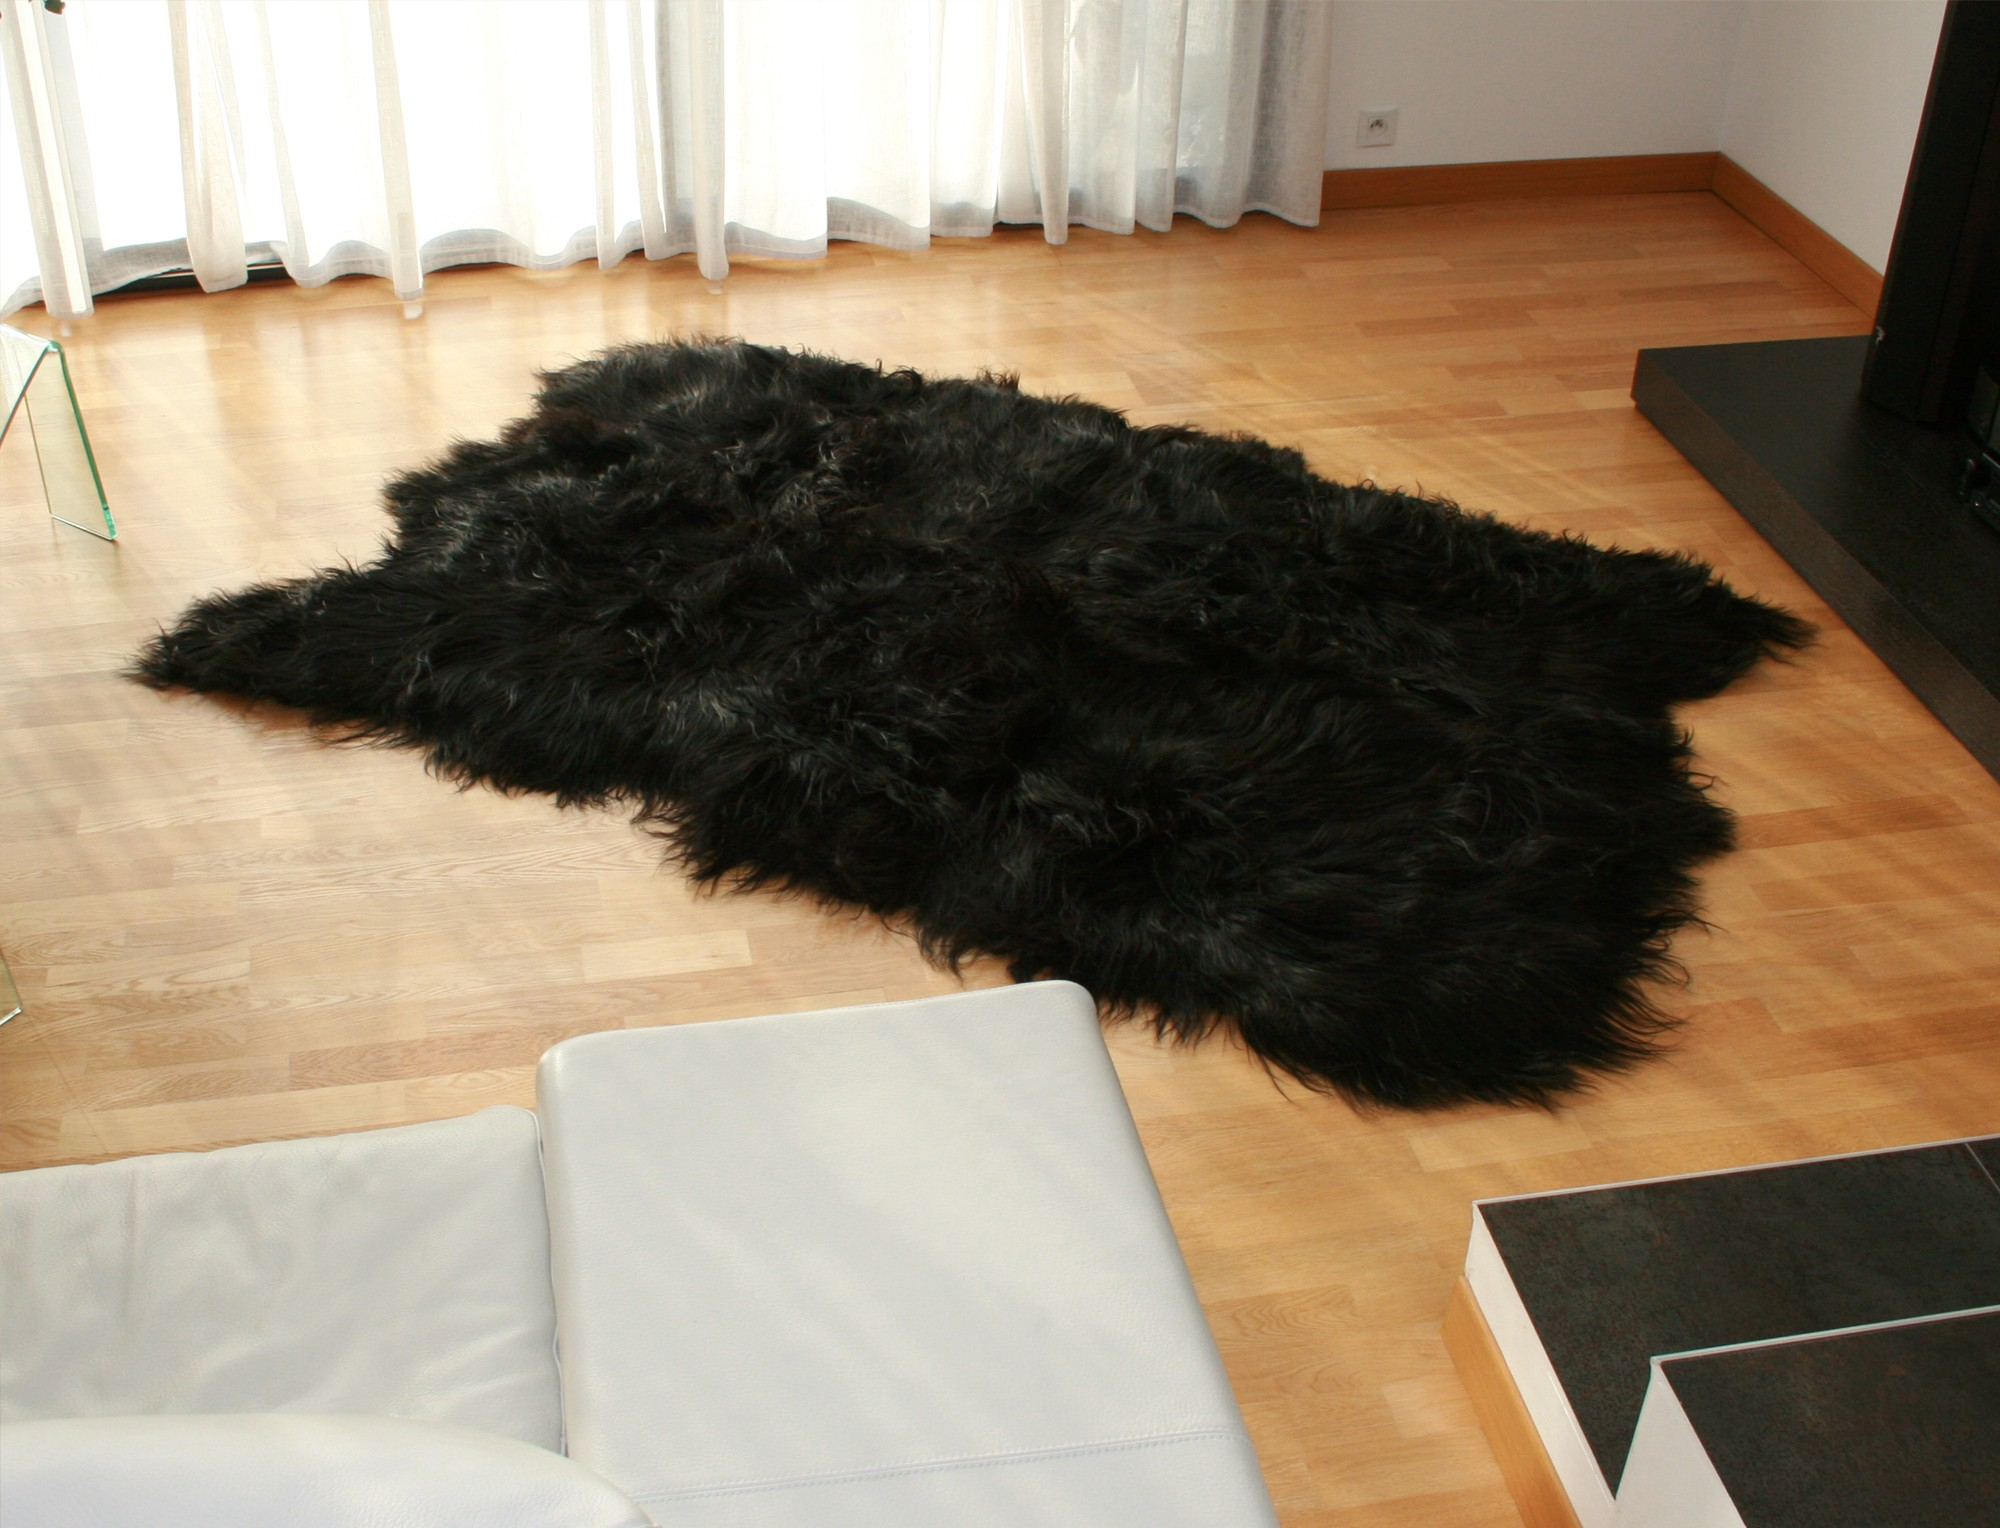 tapis en peau de mouton islandais noir. Black Bedroom Furniture Sets. Home Design Ideas